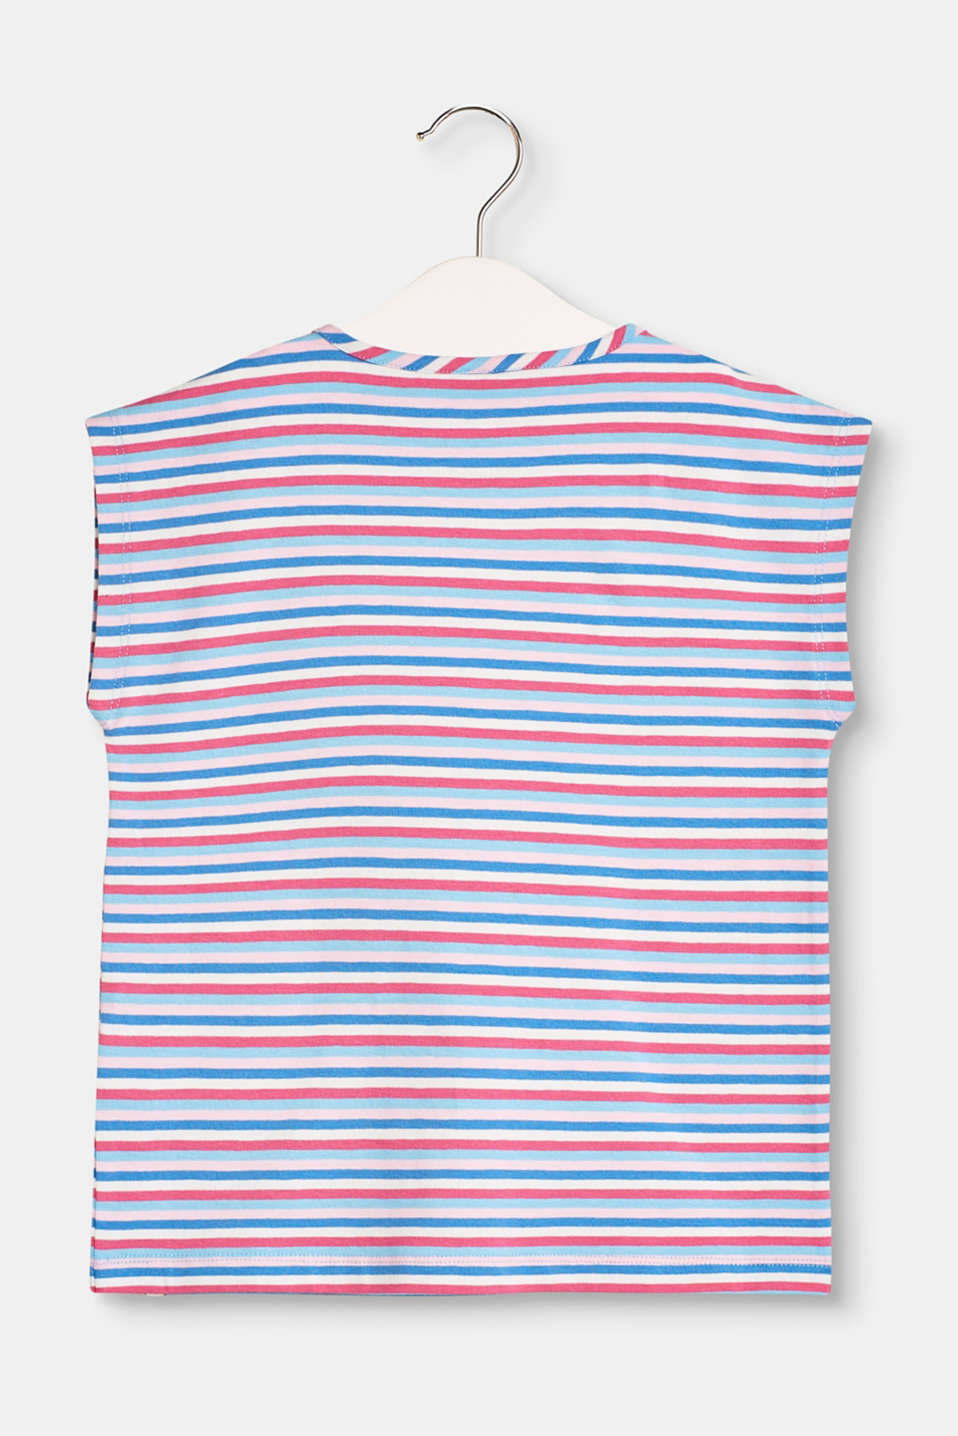 Loose, striped T-shirt made of stretch cotton